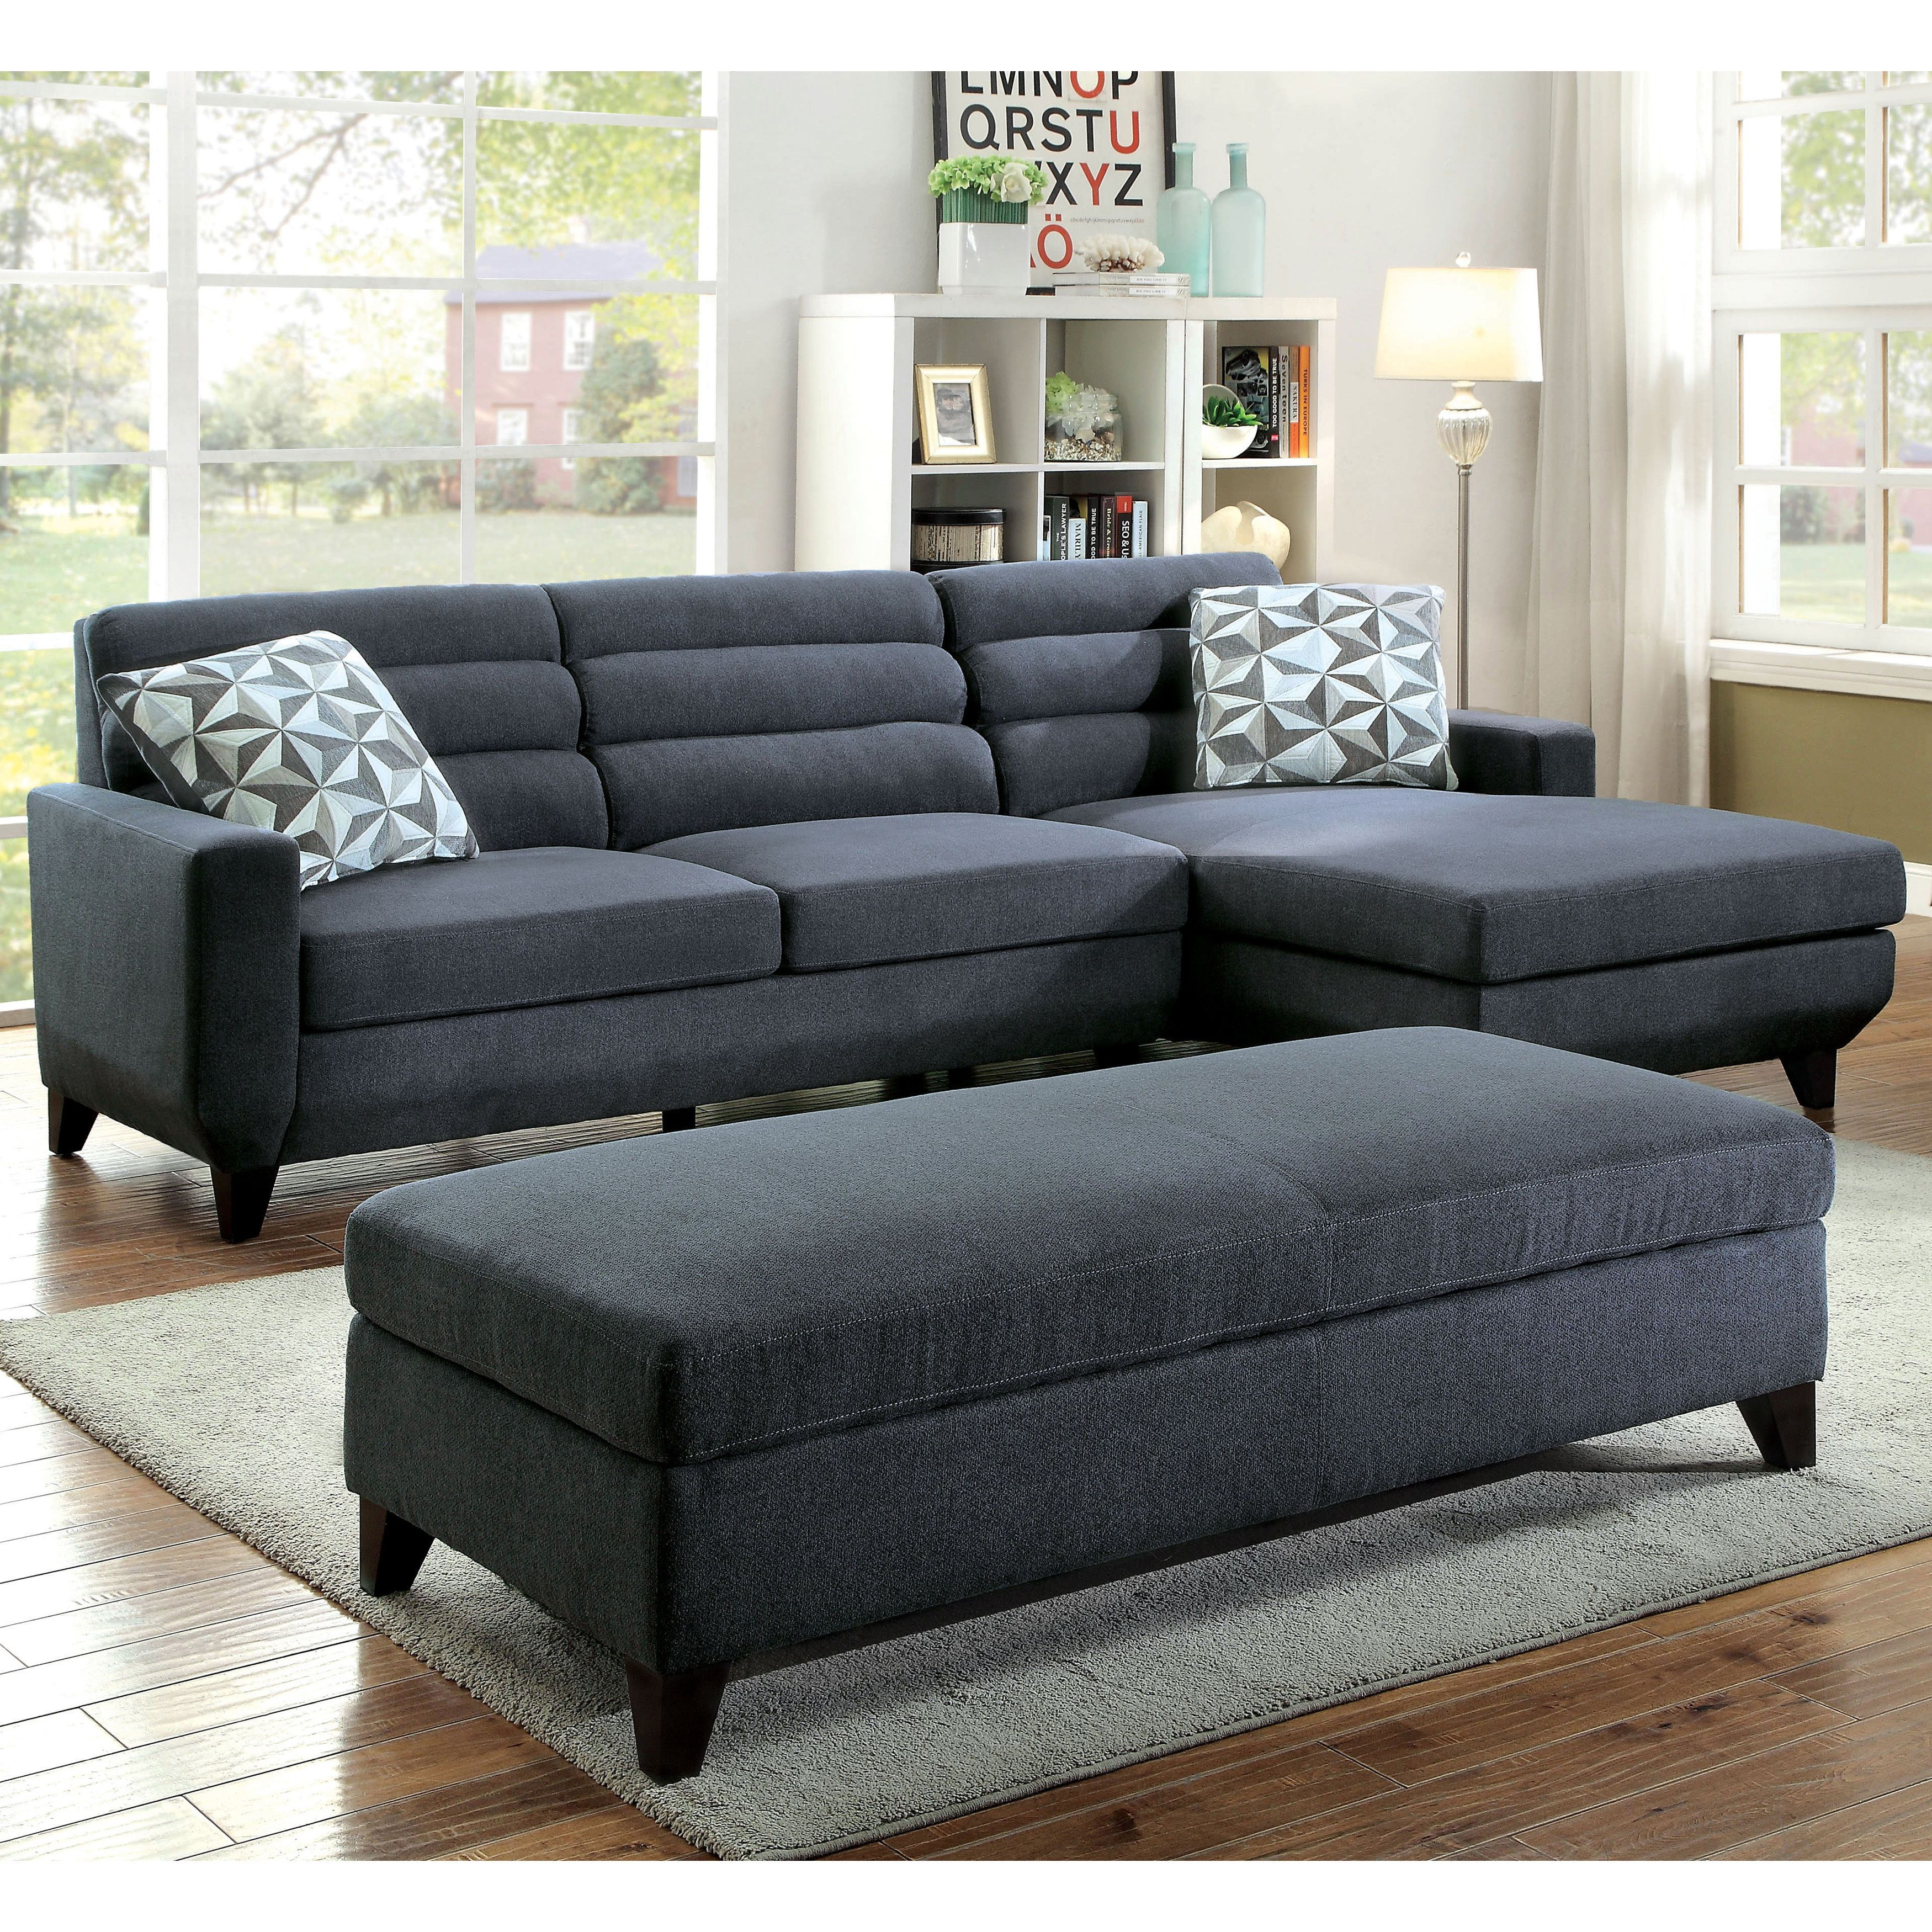 Grey Fabric L Shaped Sofa Greek Bed Furniture Of America Brixon Contemporary Dark Padded